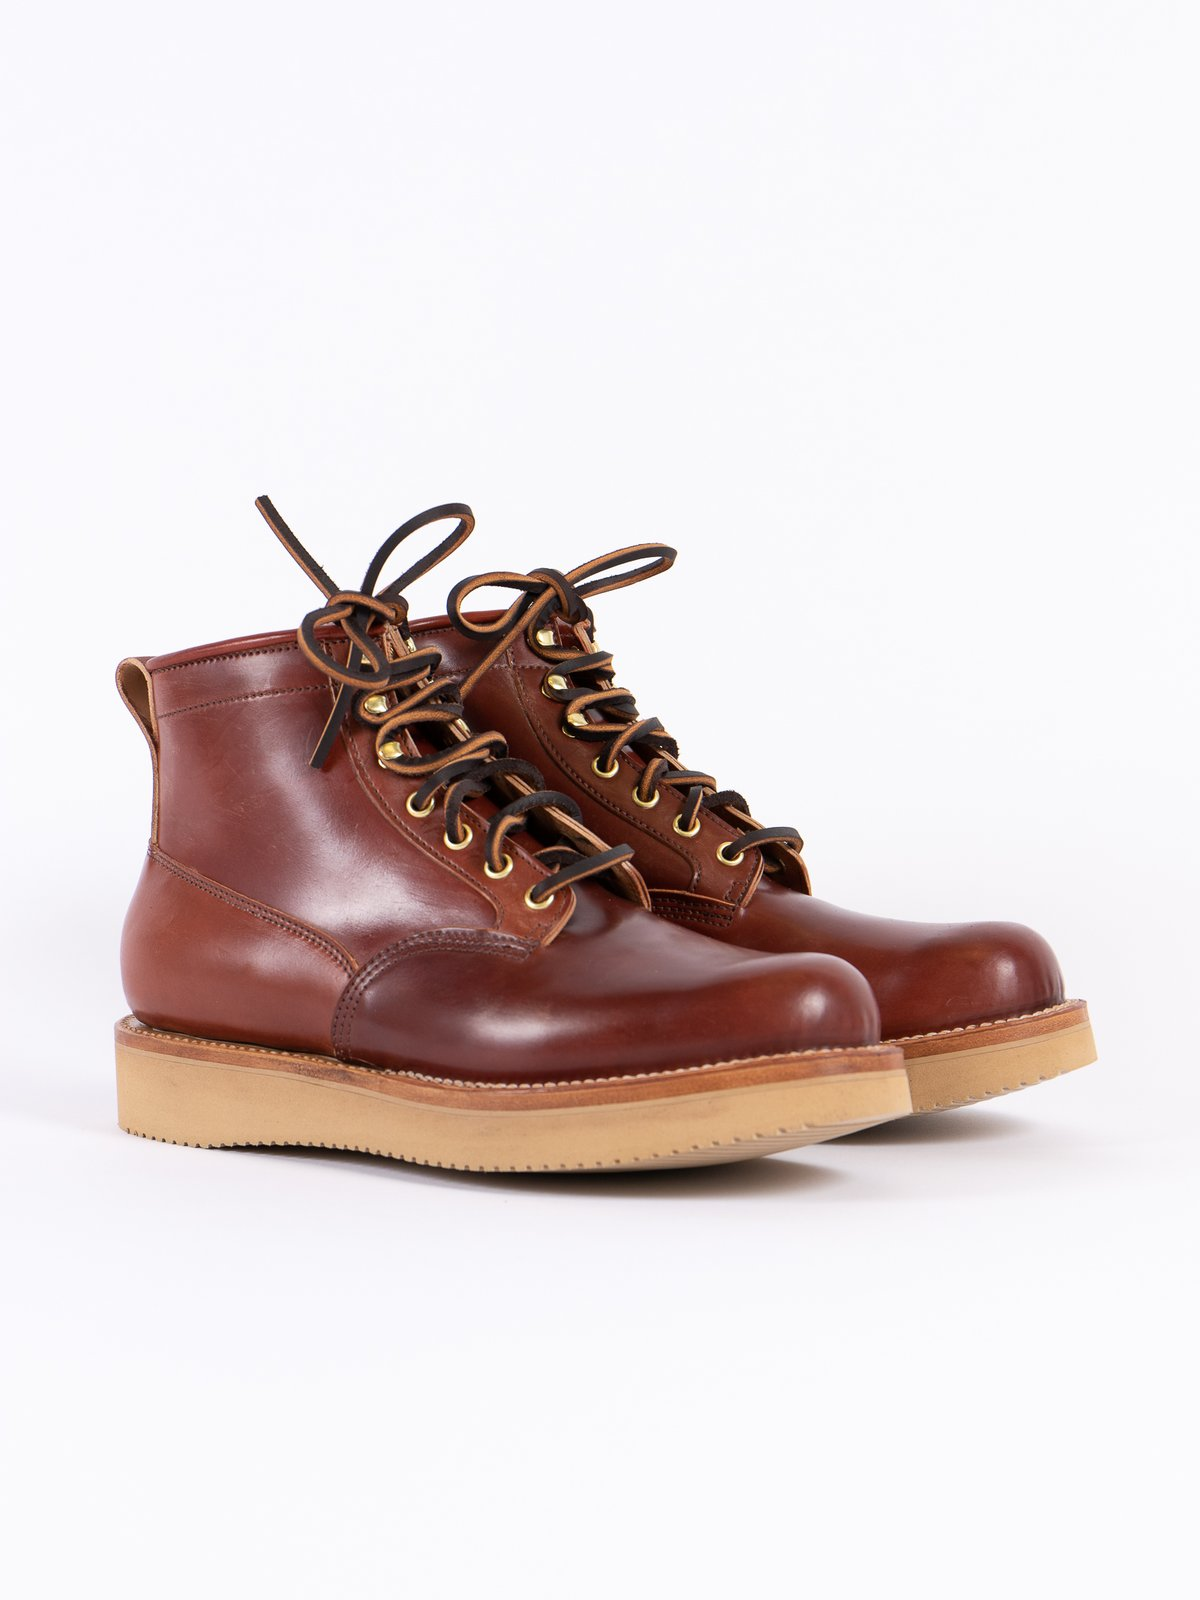 Garnet Shell Cordovan Scout Boot - Image 1